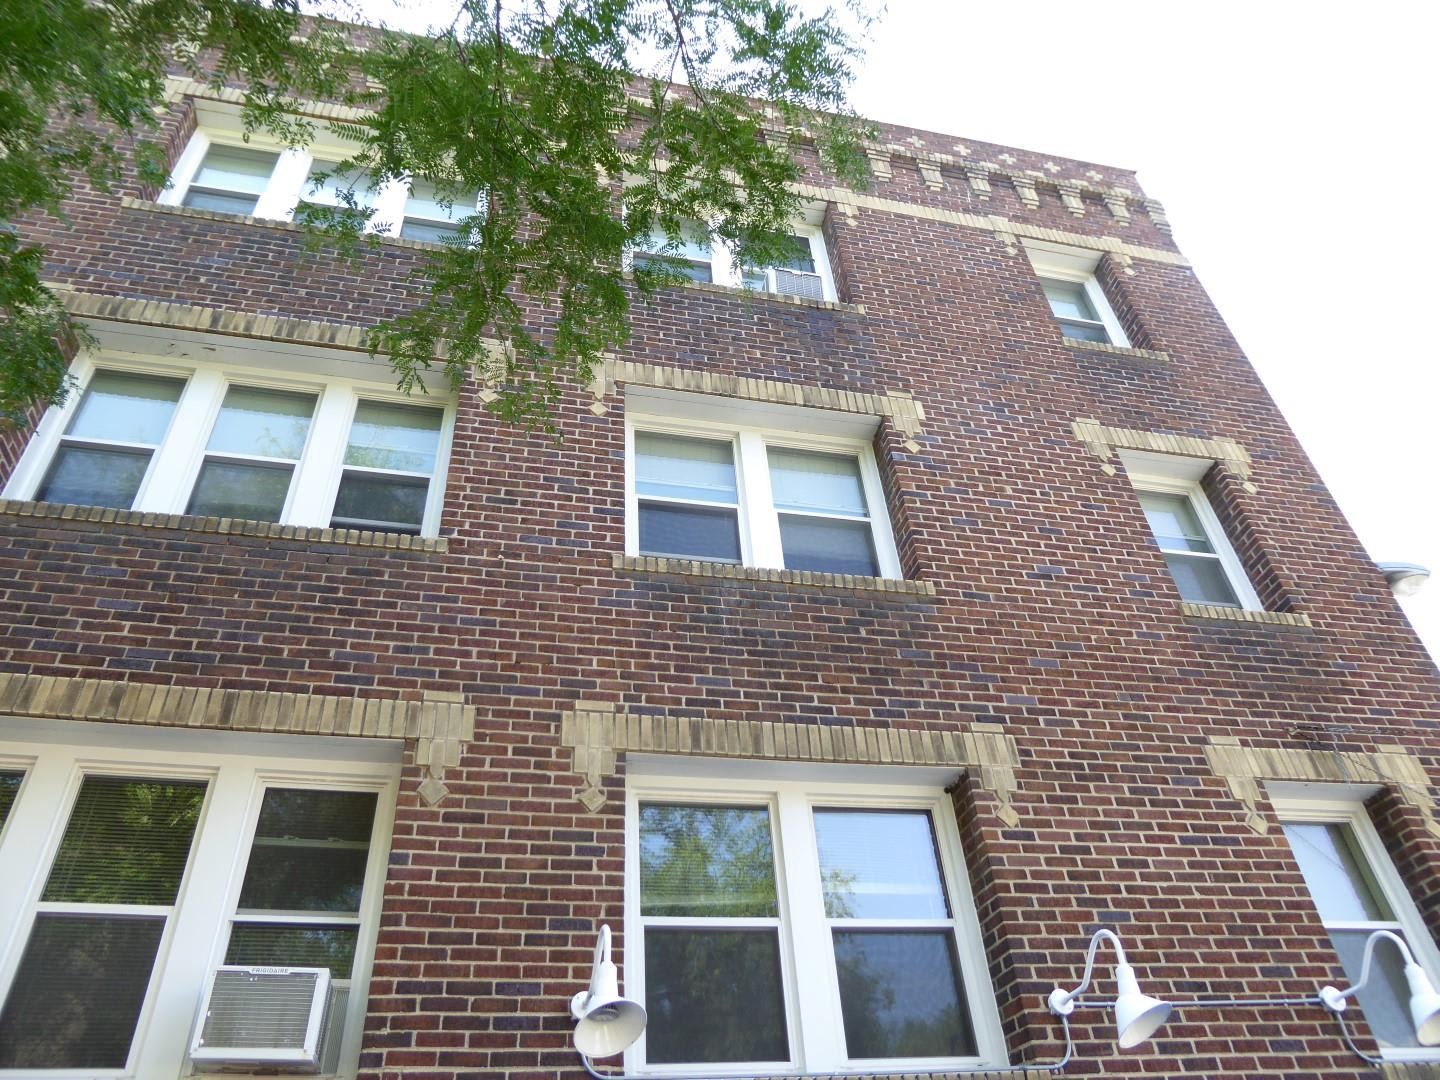 Large Exterior Windows with White Trim at Minneapolis Apartment